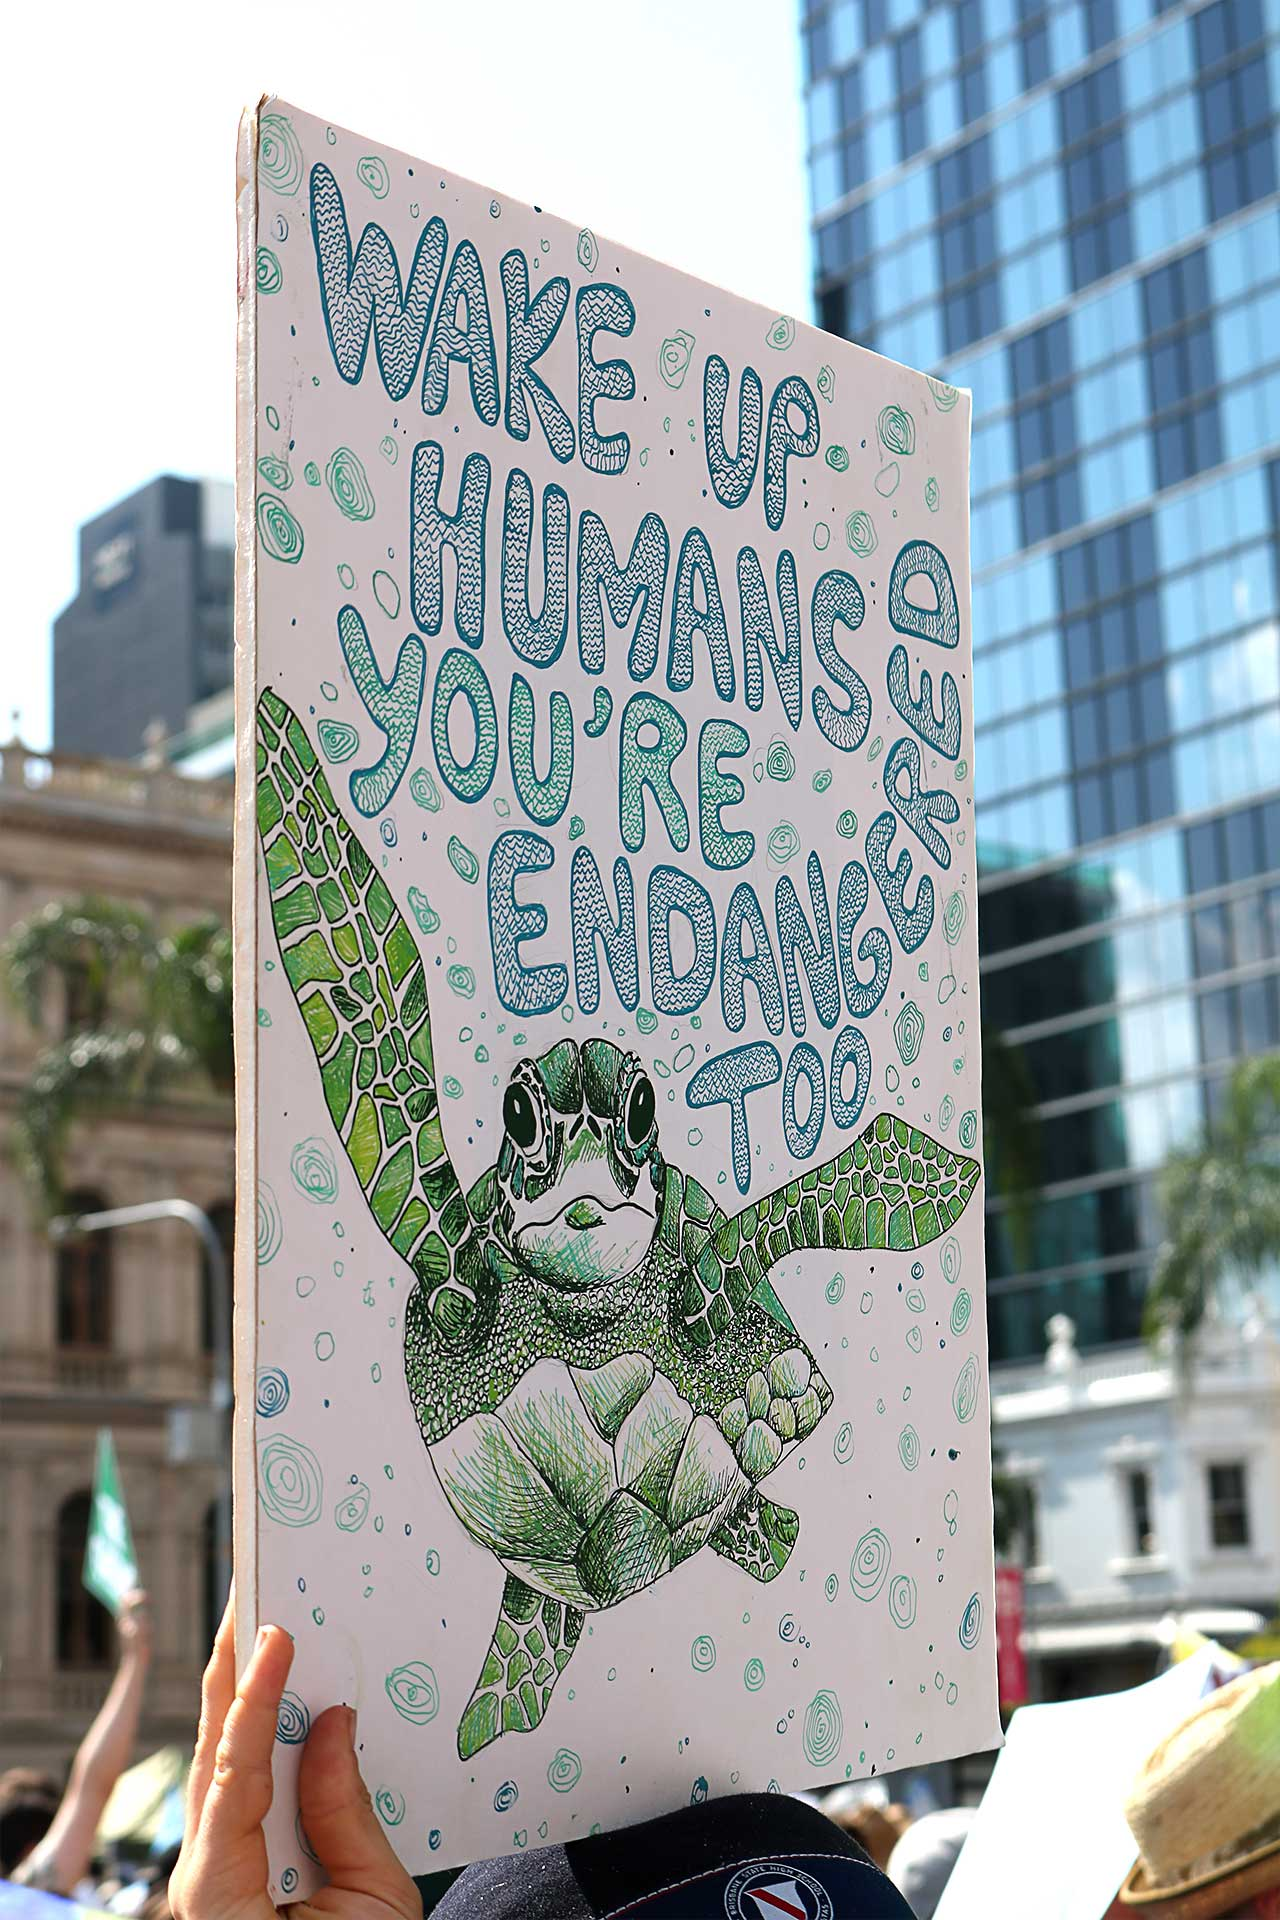 Wake up humans! You're endangered, too! // Global Climate Strikes. Bild: cc School Striker / Climate Strikes